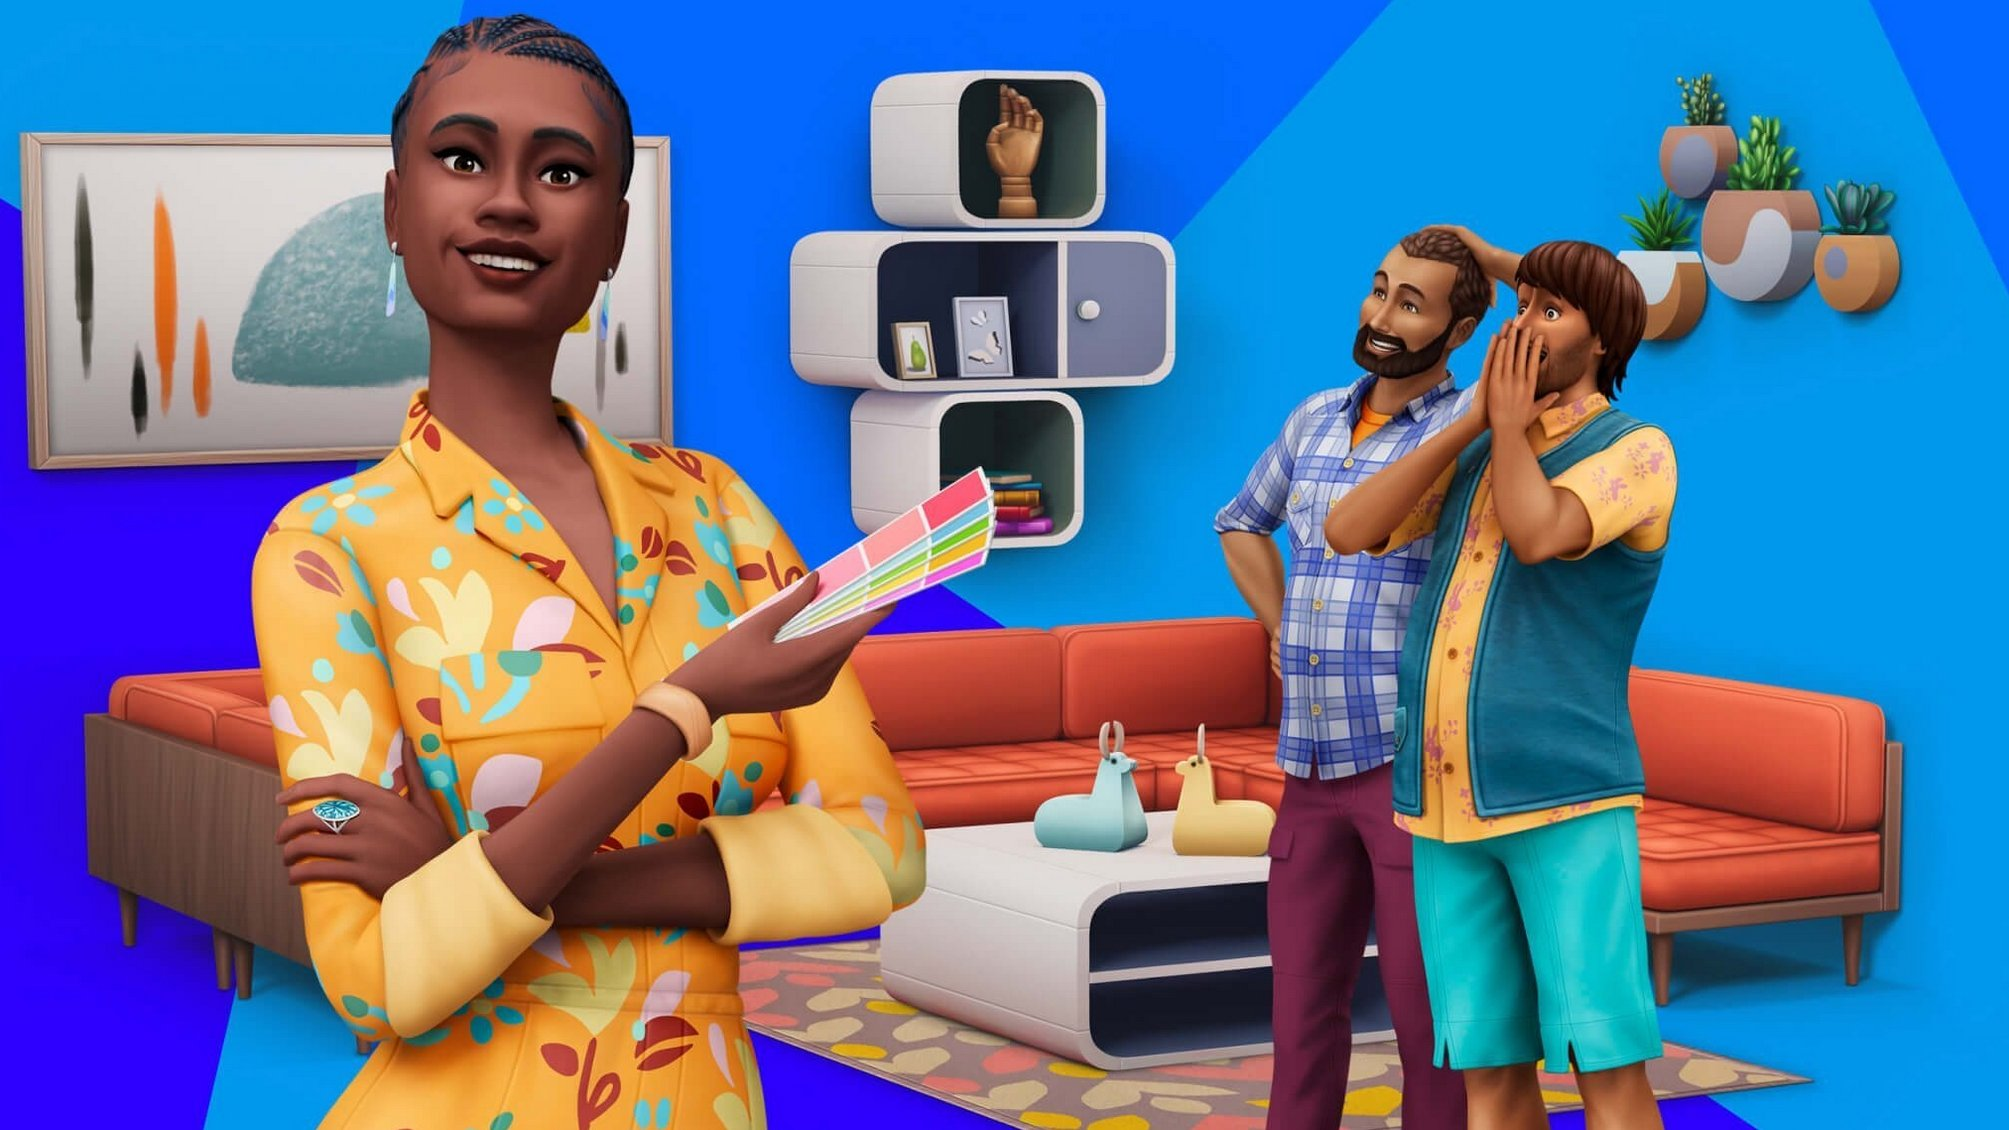 Sims 21 Traumhaftes Innendesign Tipps, Tricks & Guides   S21G